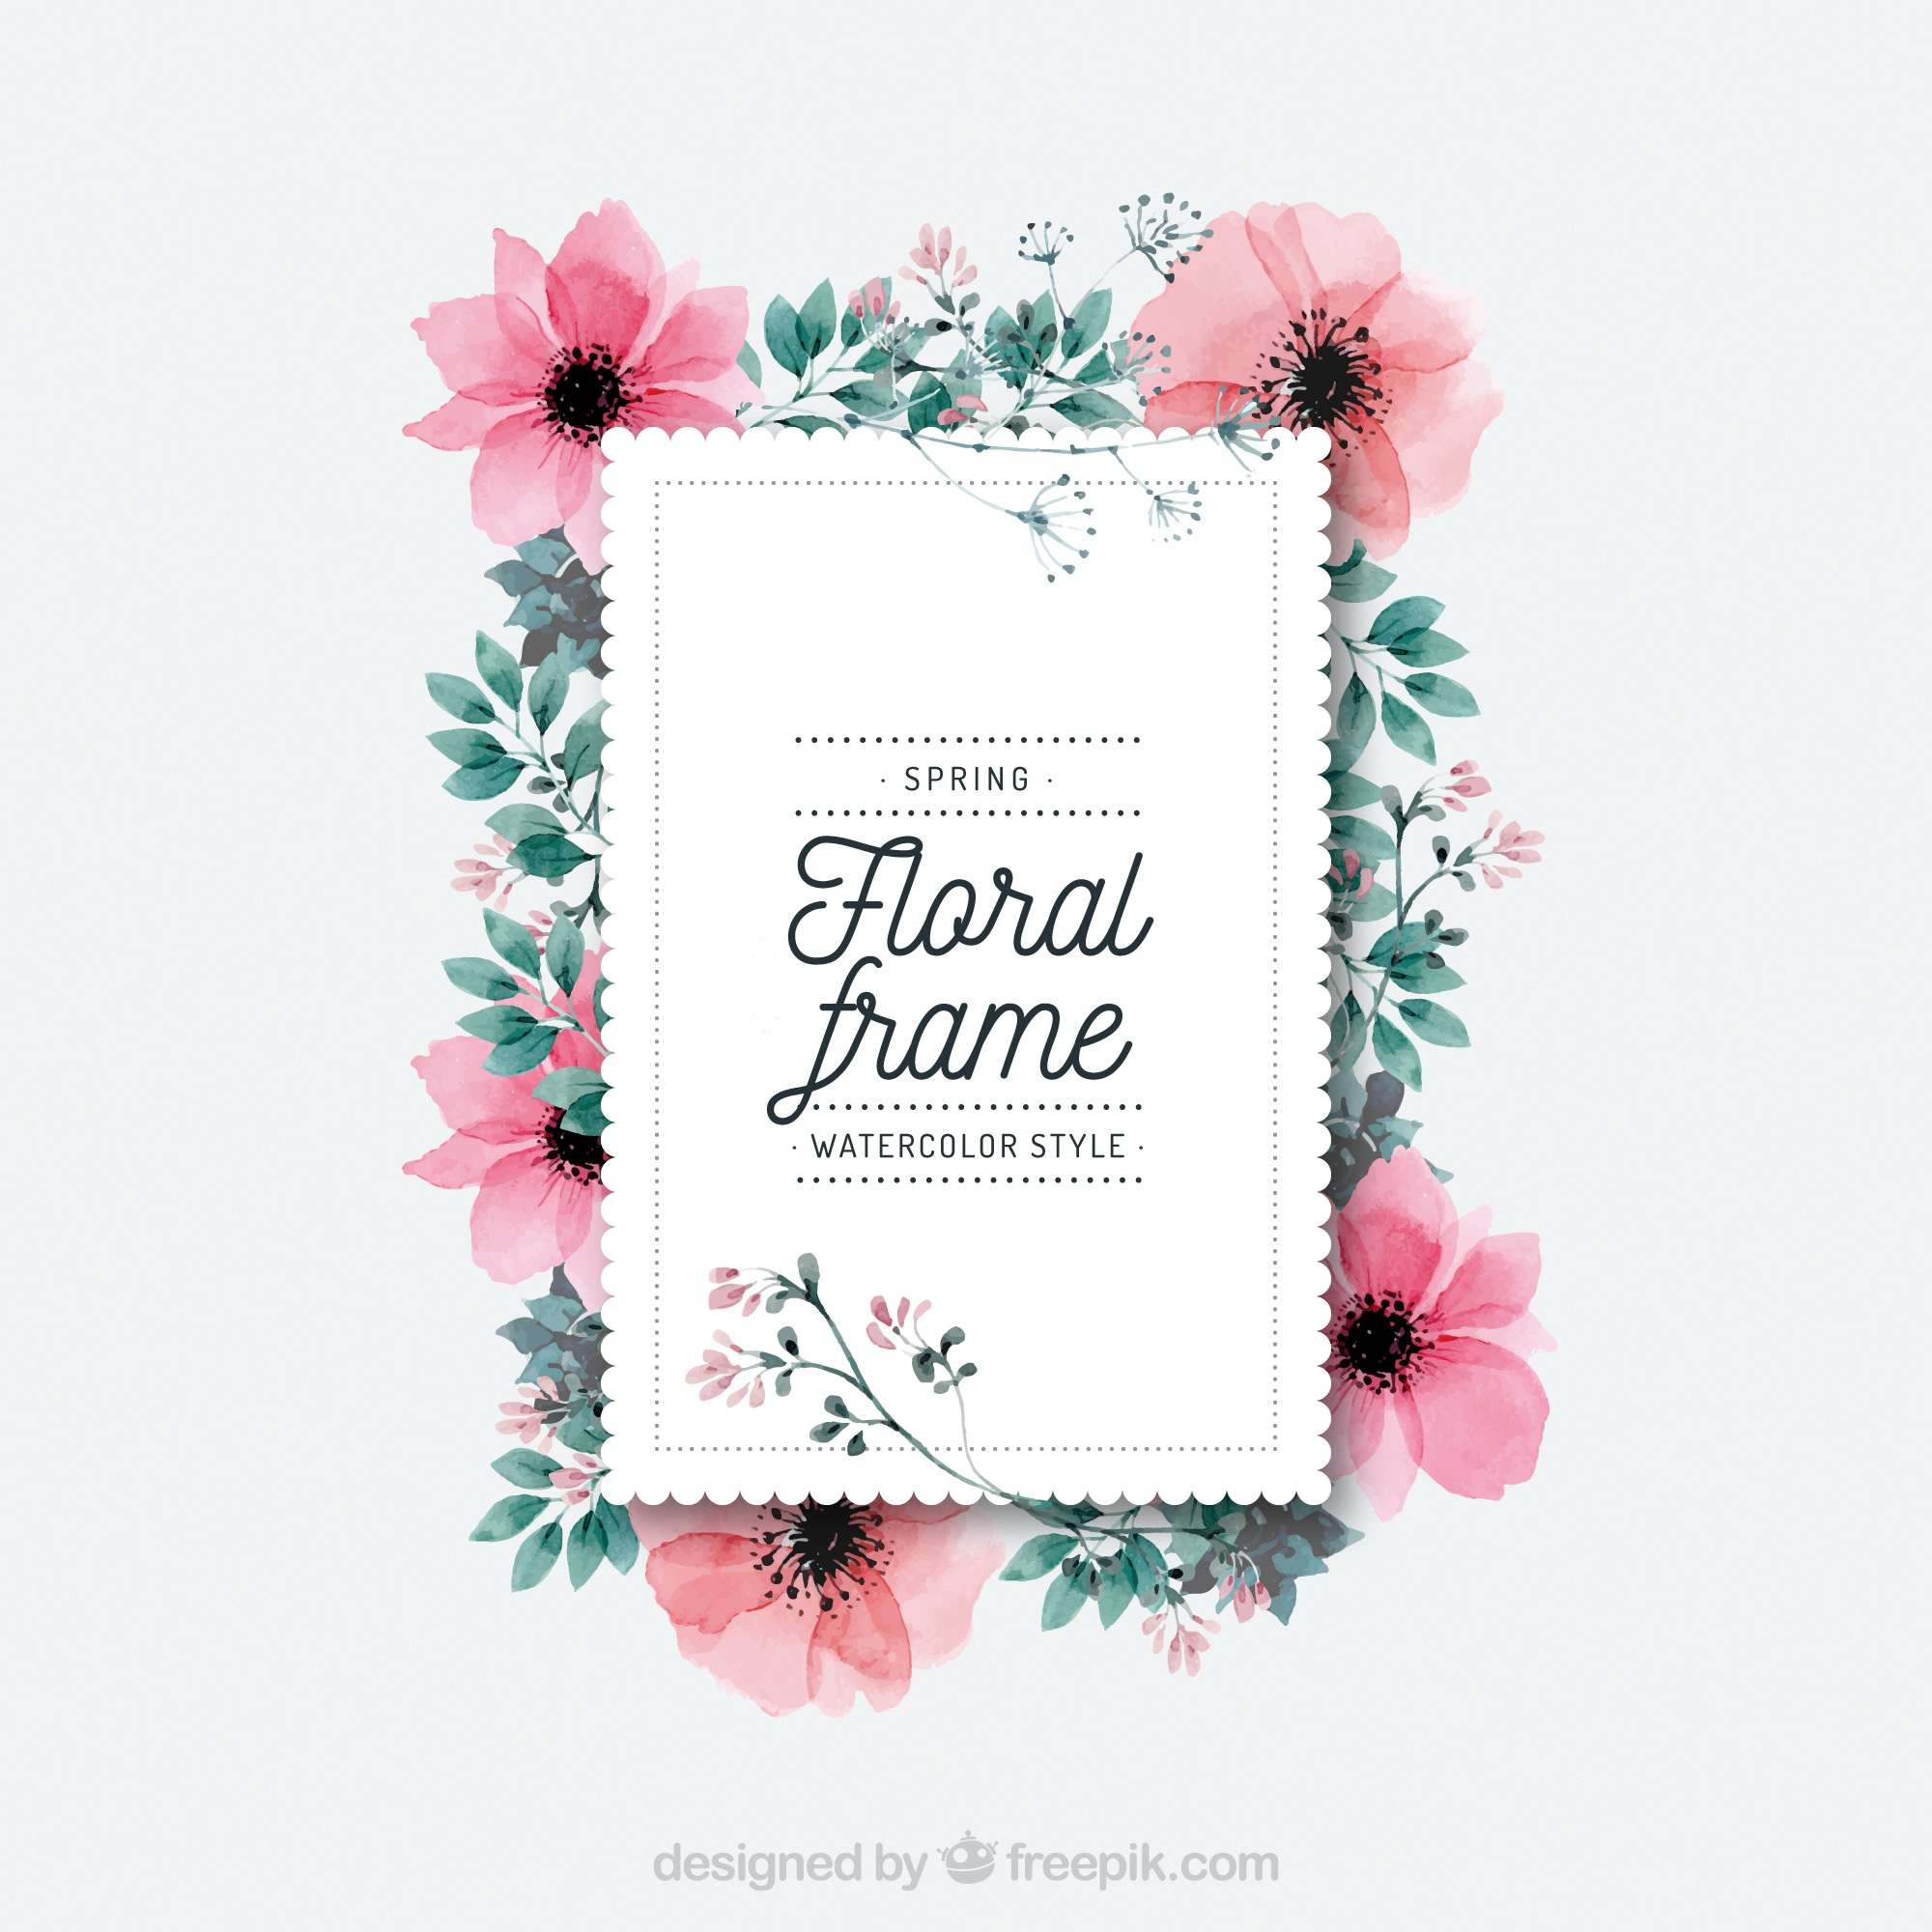 Watercolor spring floral frame